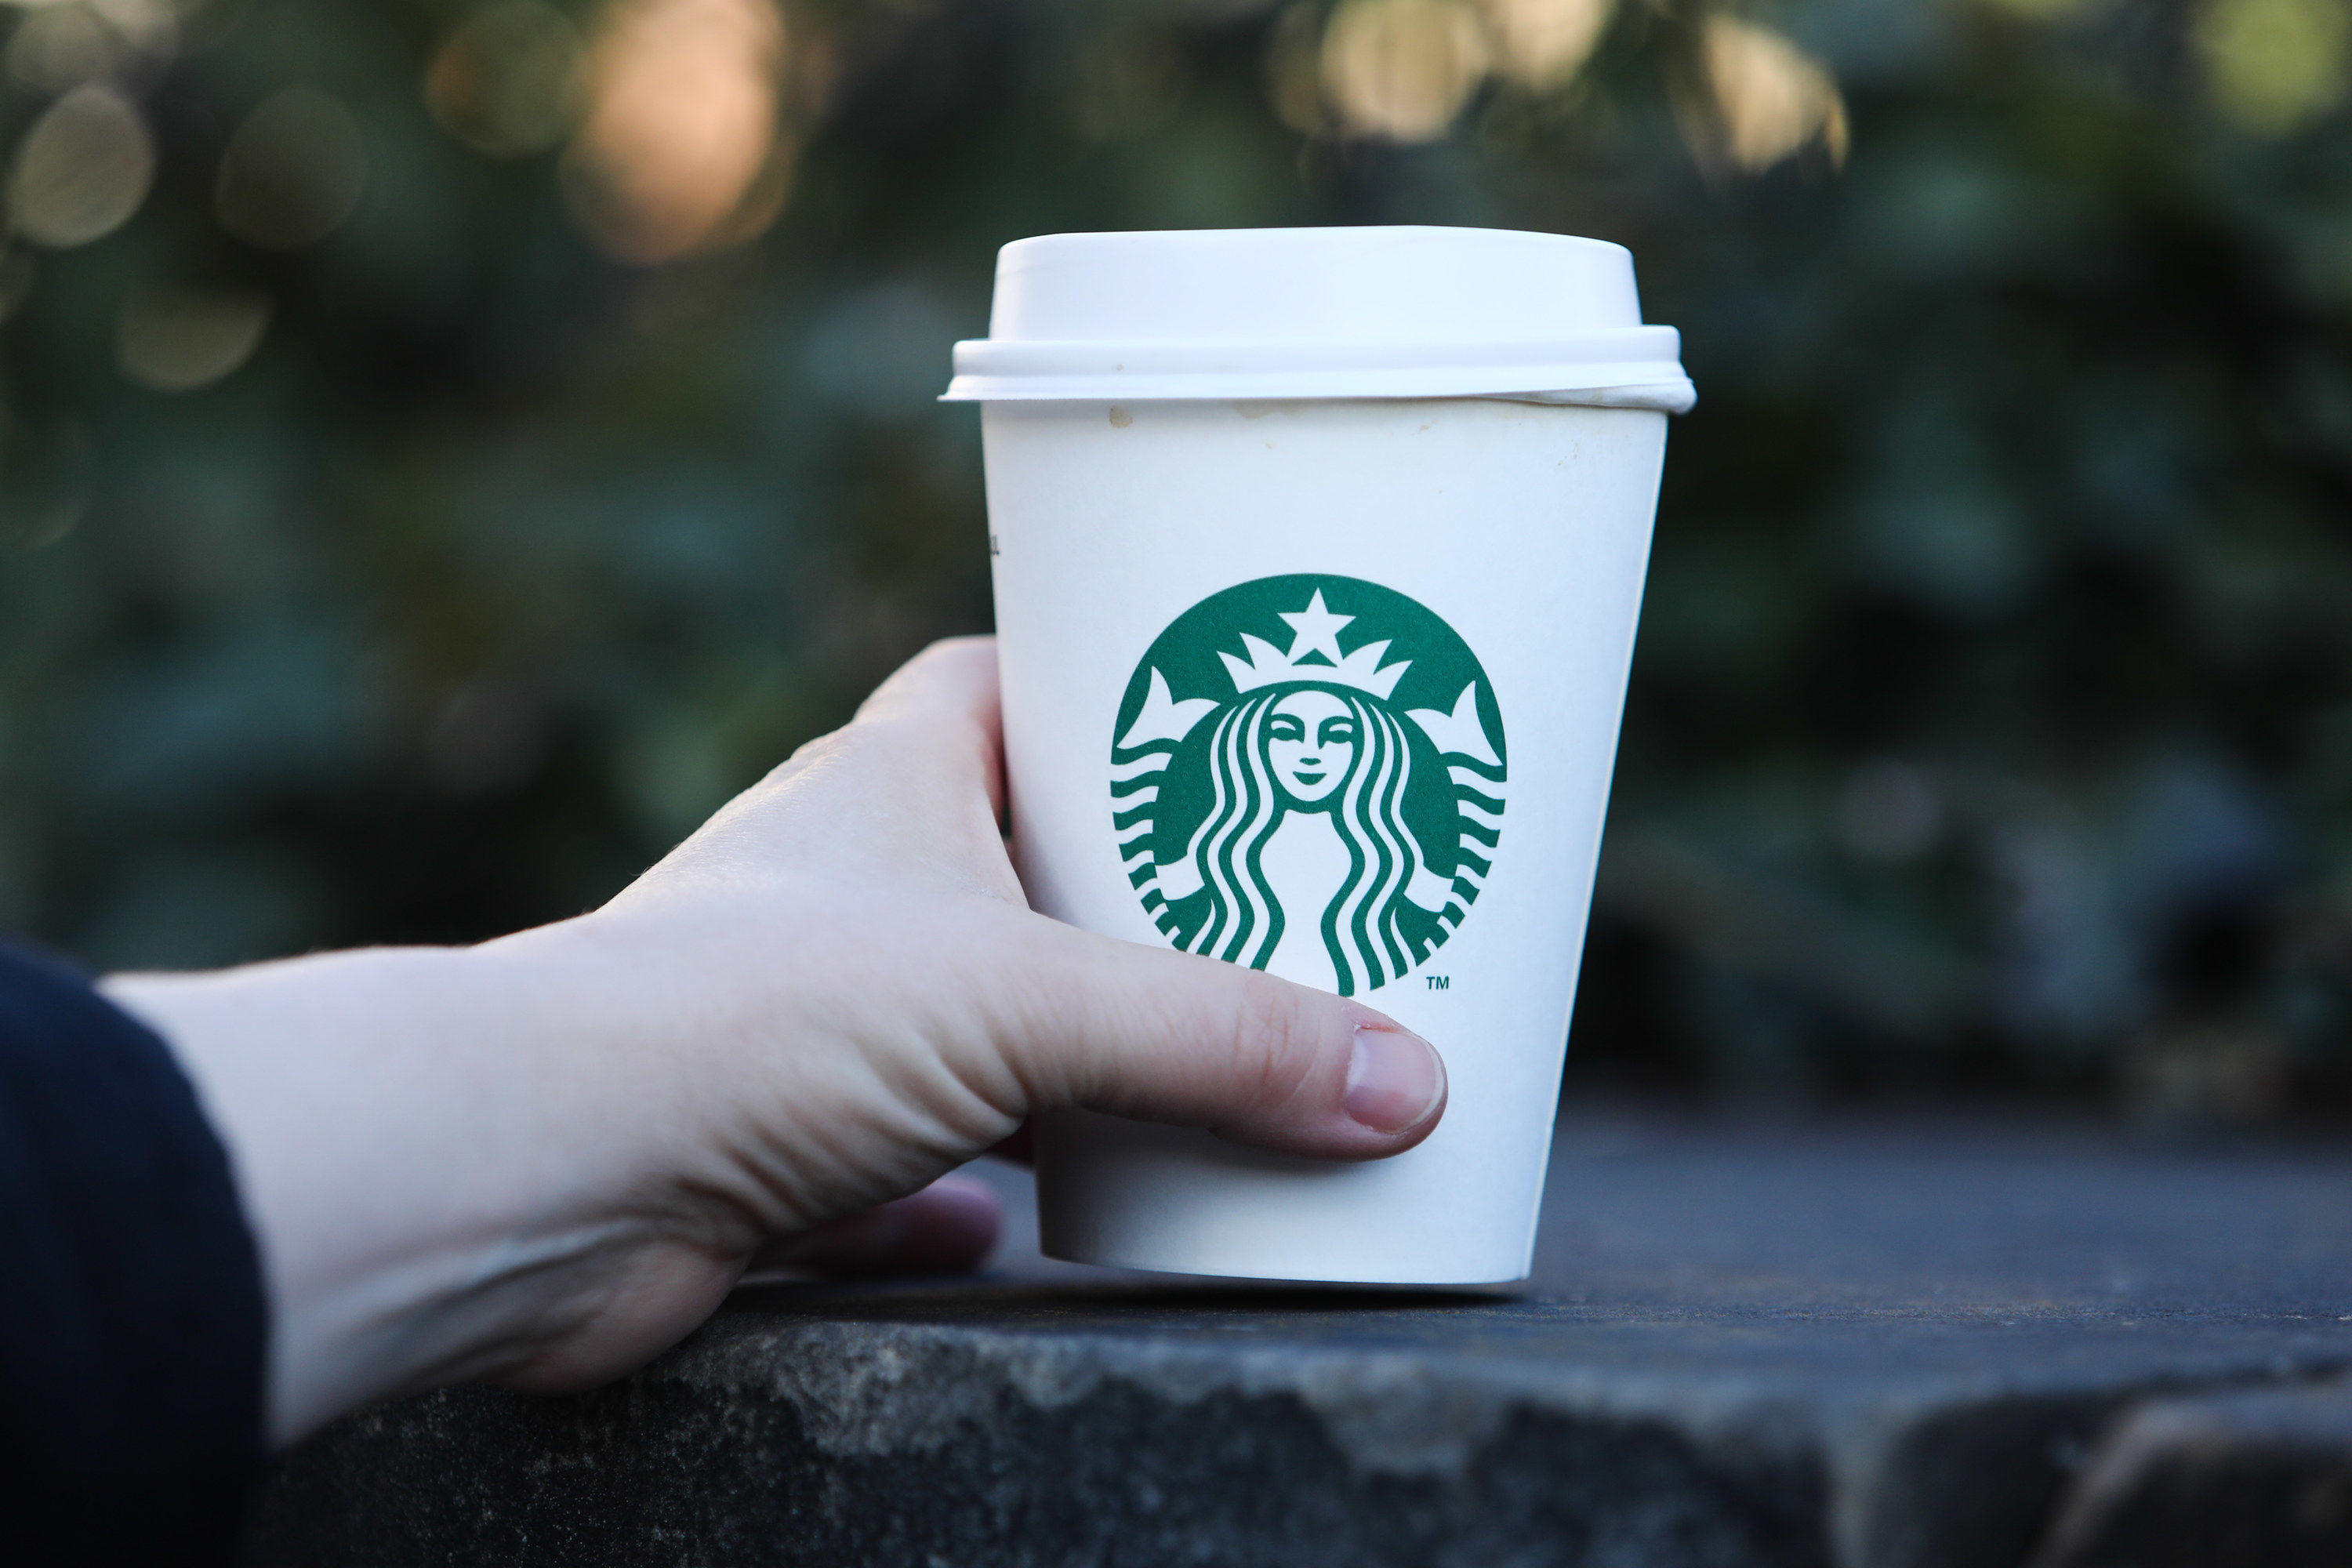 Someone holding a Starbucks cup